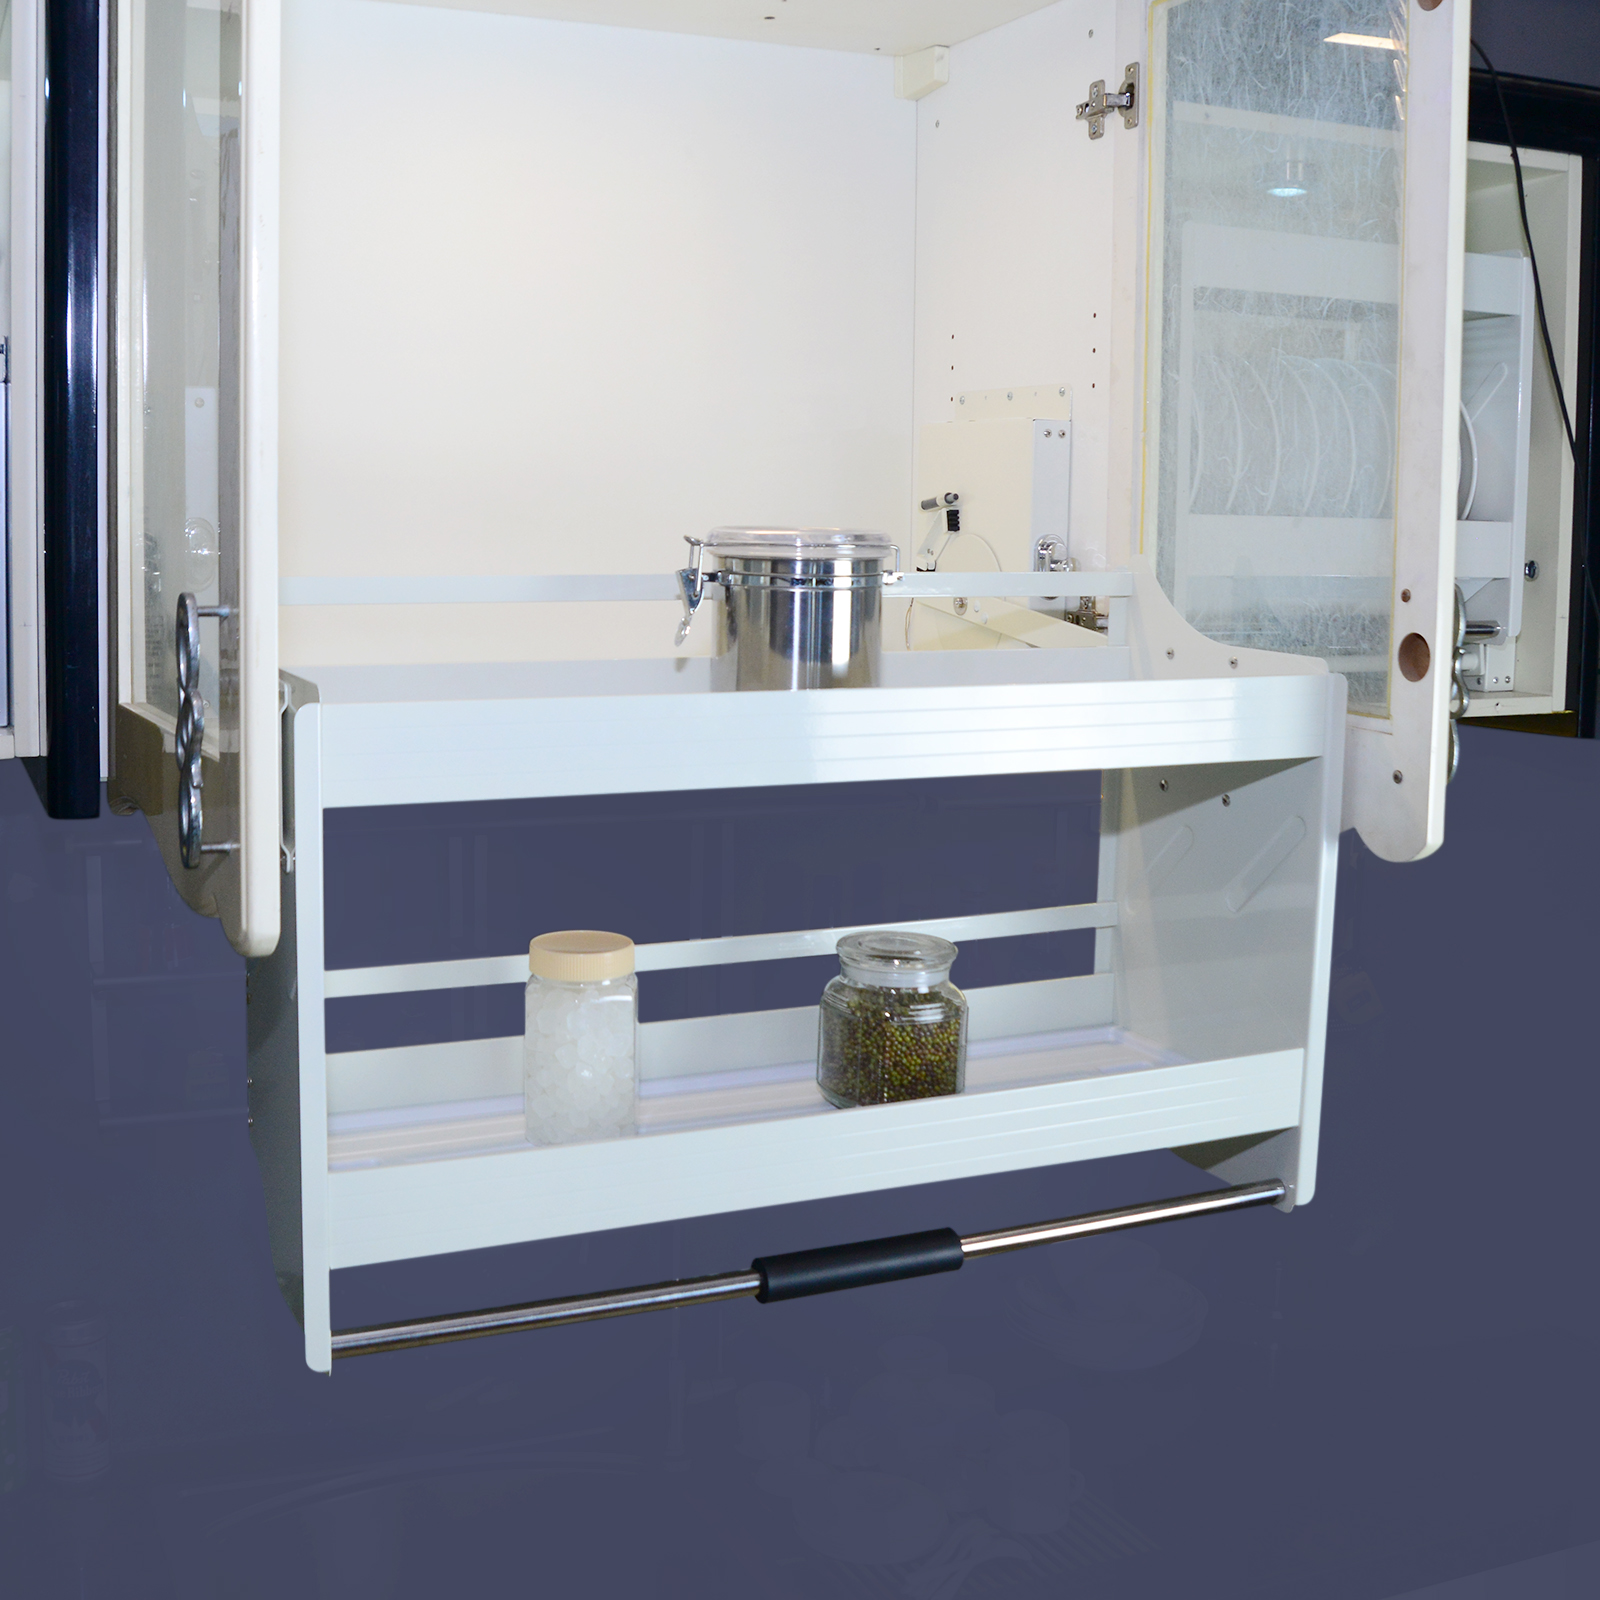 Details about Pull Down 2 Tier Shelves Storage System Wall Cabinet Kitchen  Bathroom Bars Room